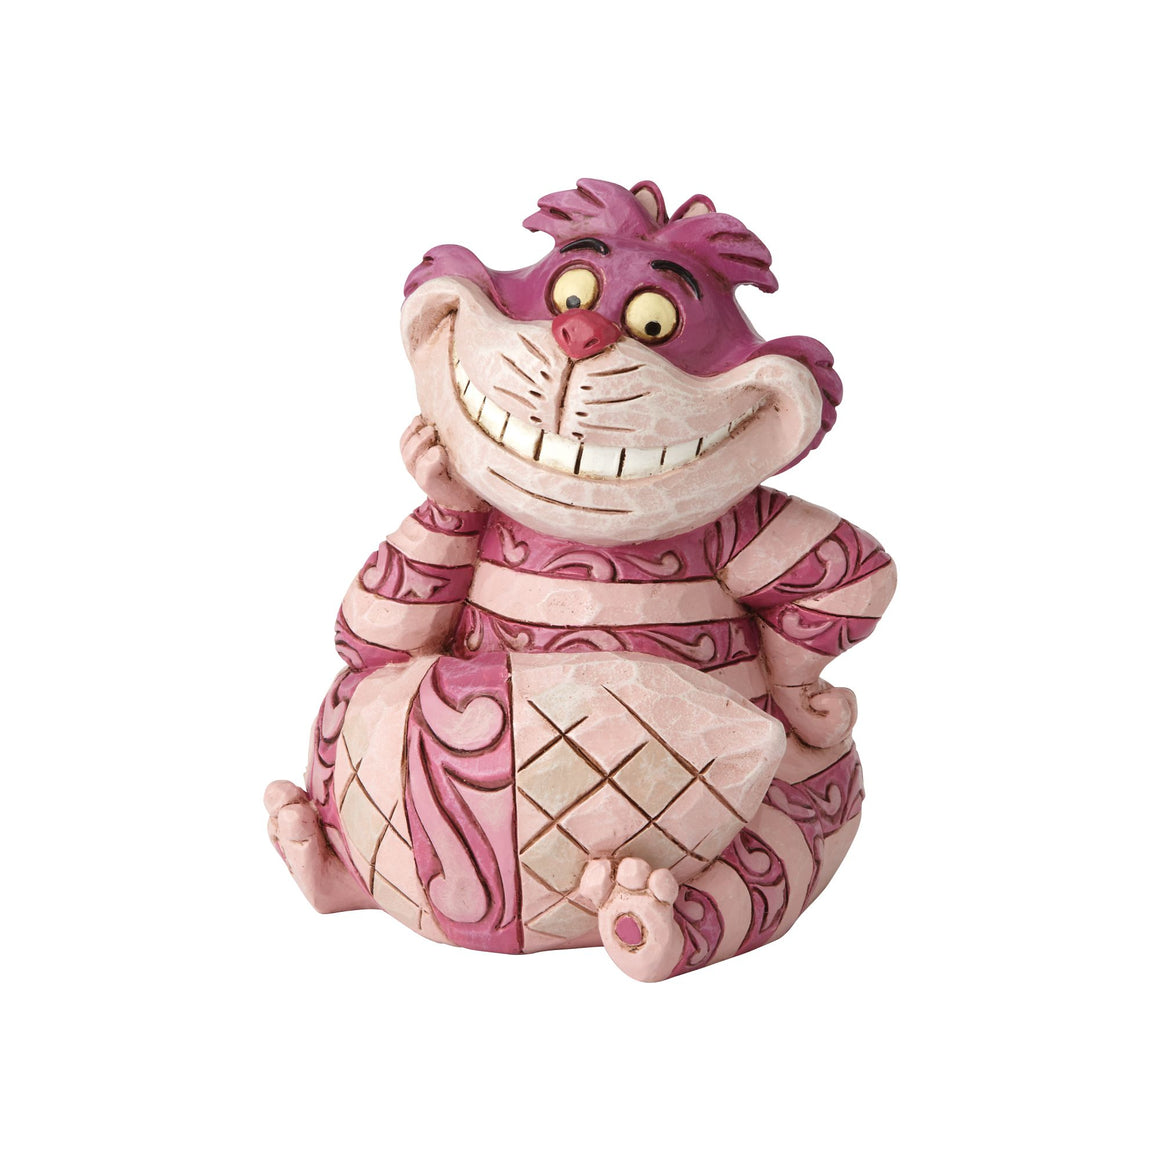 Cheshire Cat Mini Figurine - Disney Traditions by Jim Shore